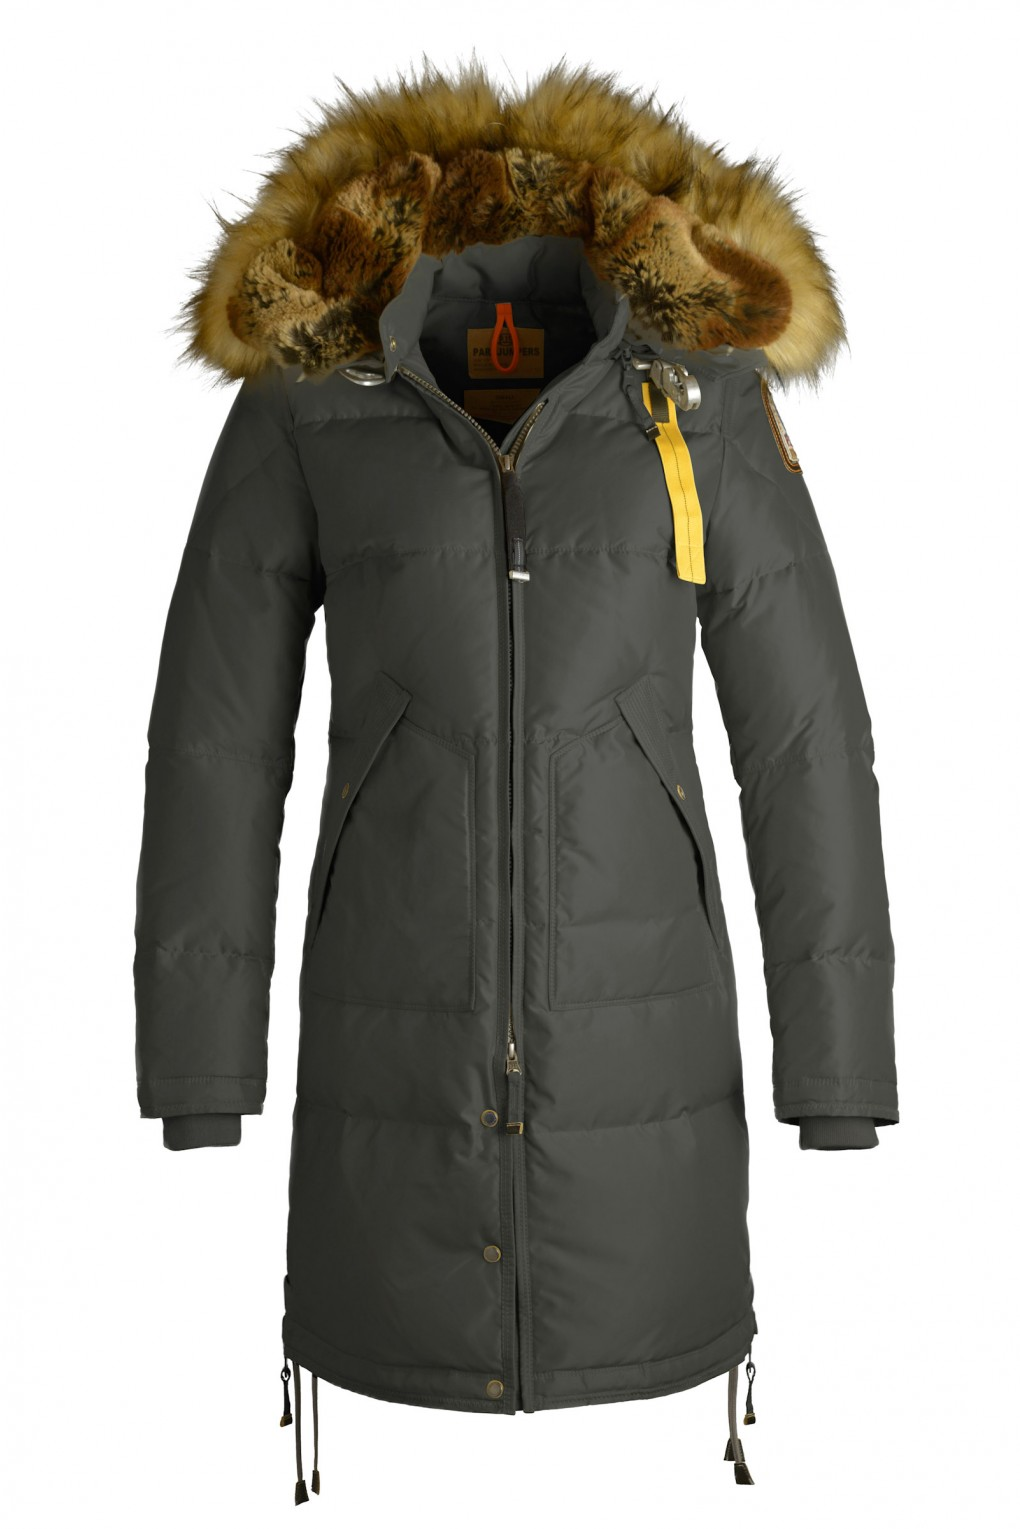 parajumpers LONG BEAR ECO woman outerwear Sage